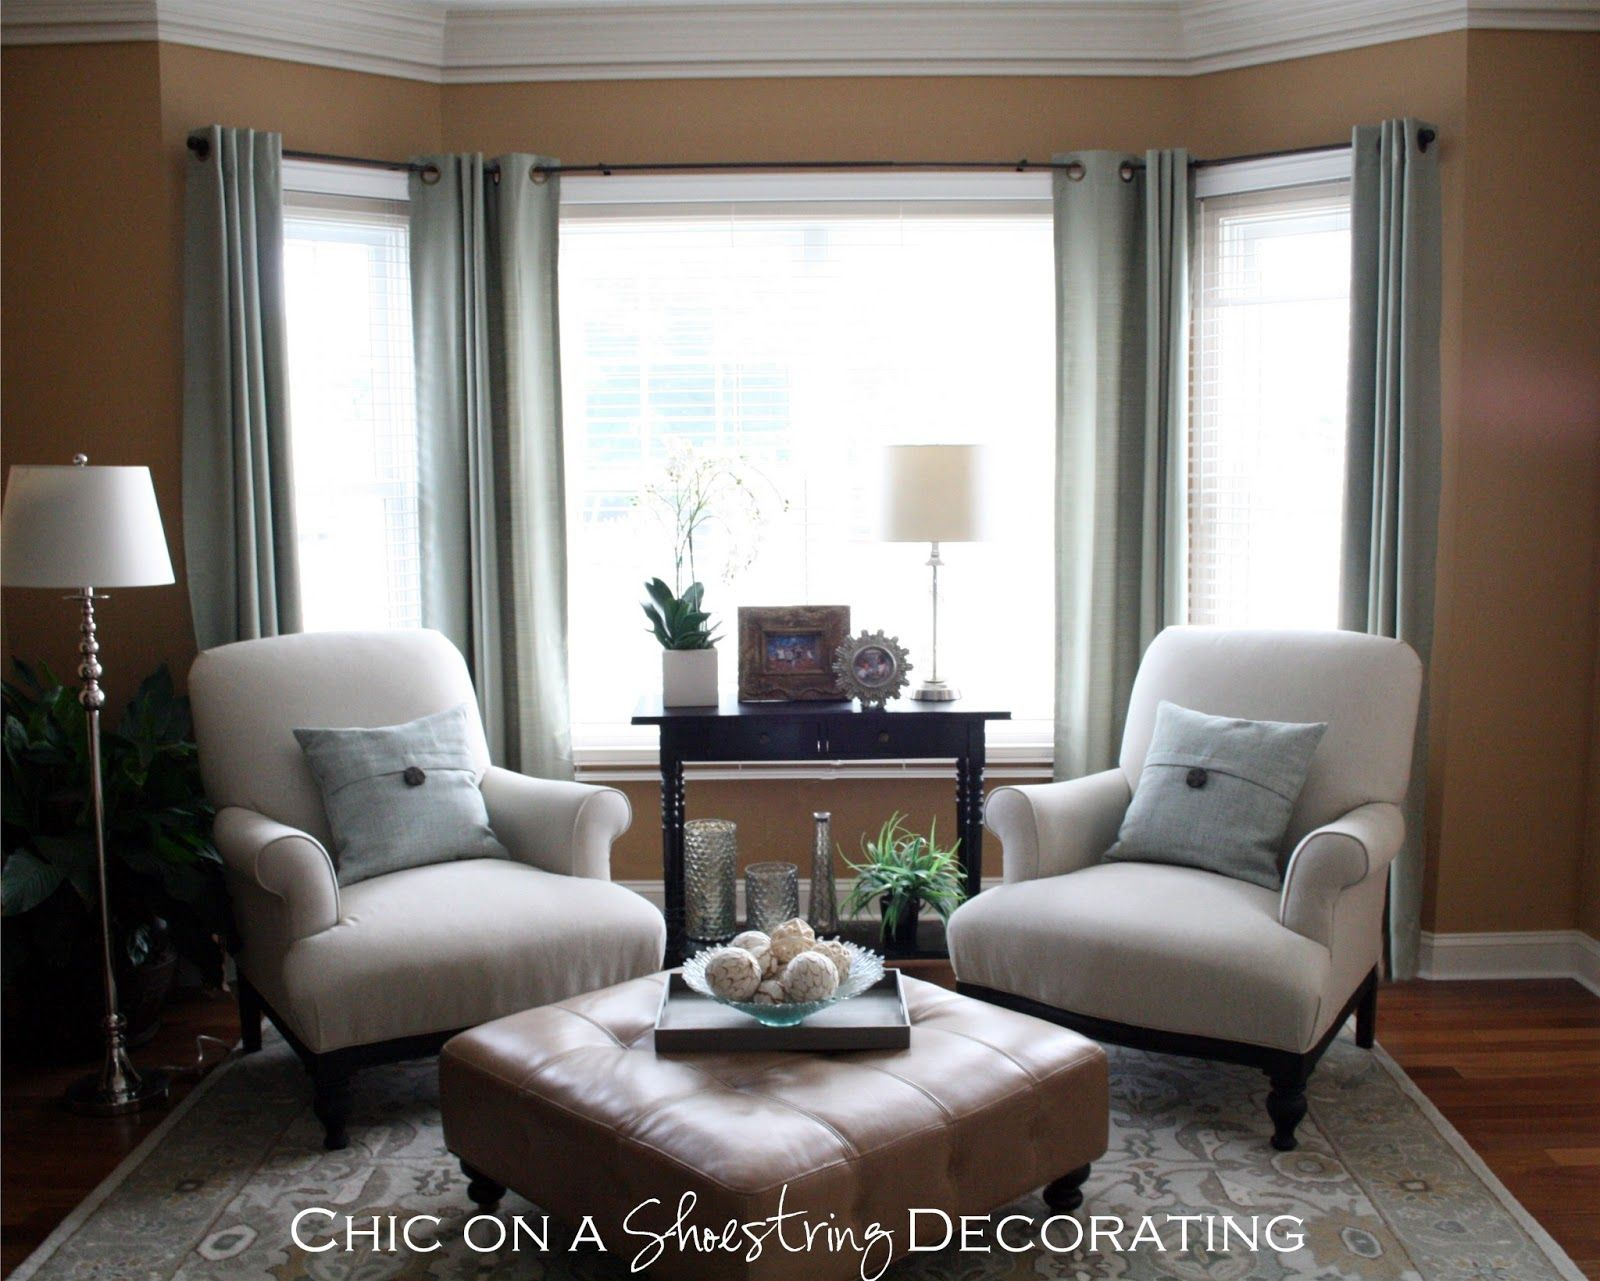 Chic on a Shoestring Decorating: Grand Piano Living Room | For the ...